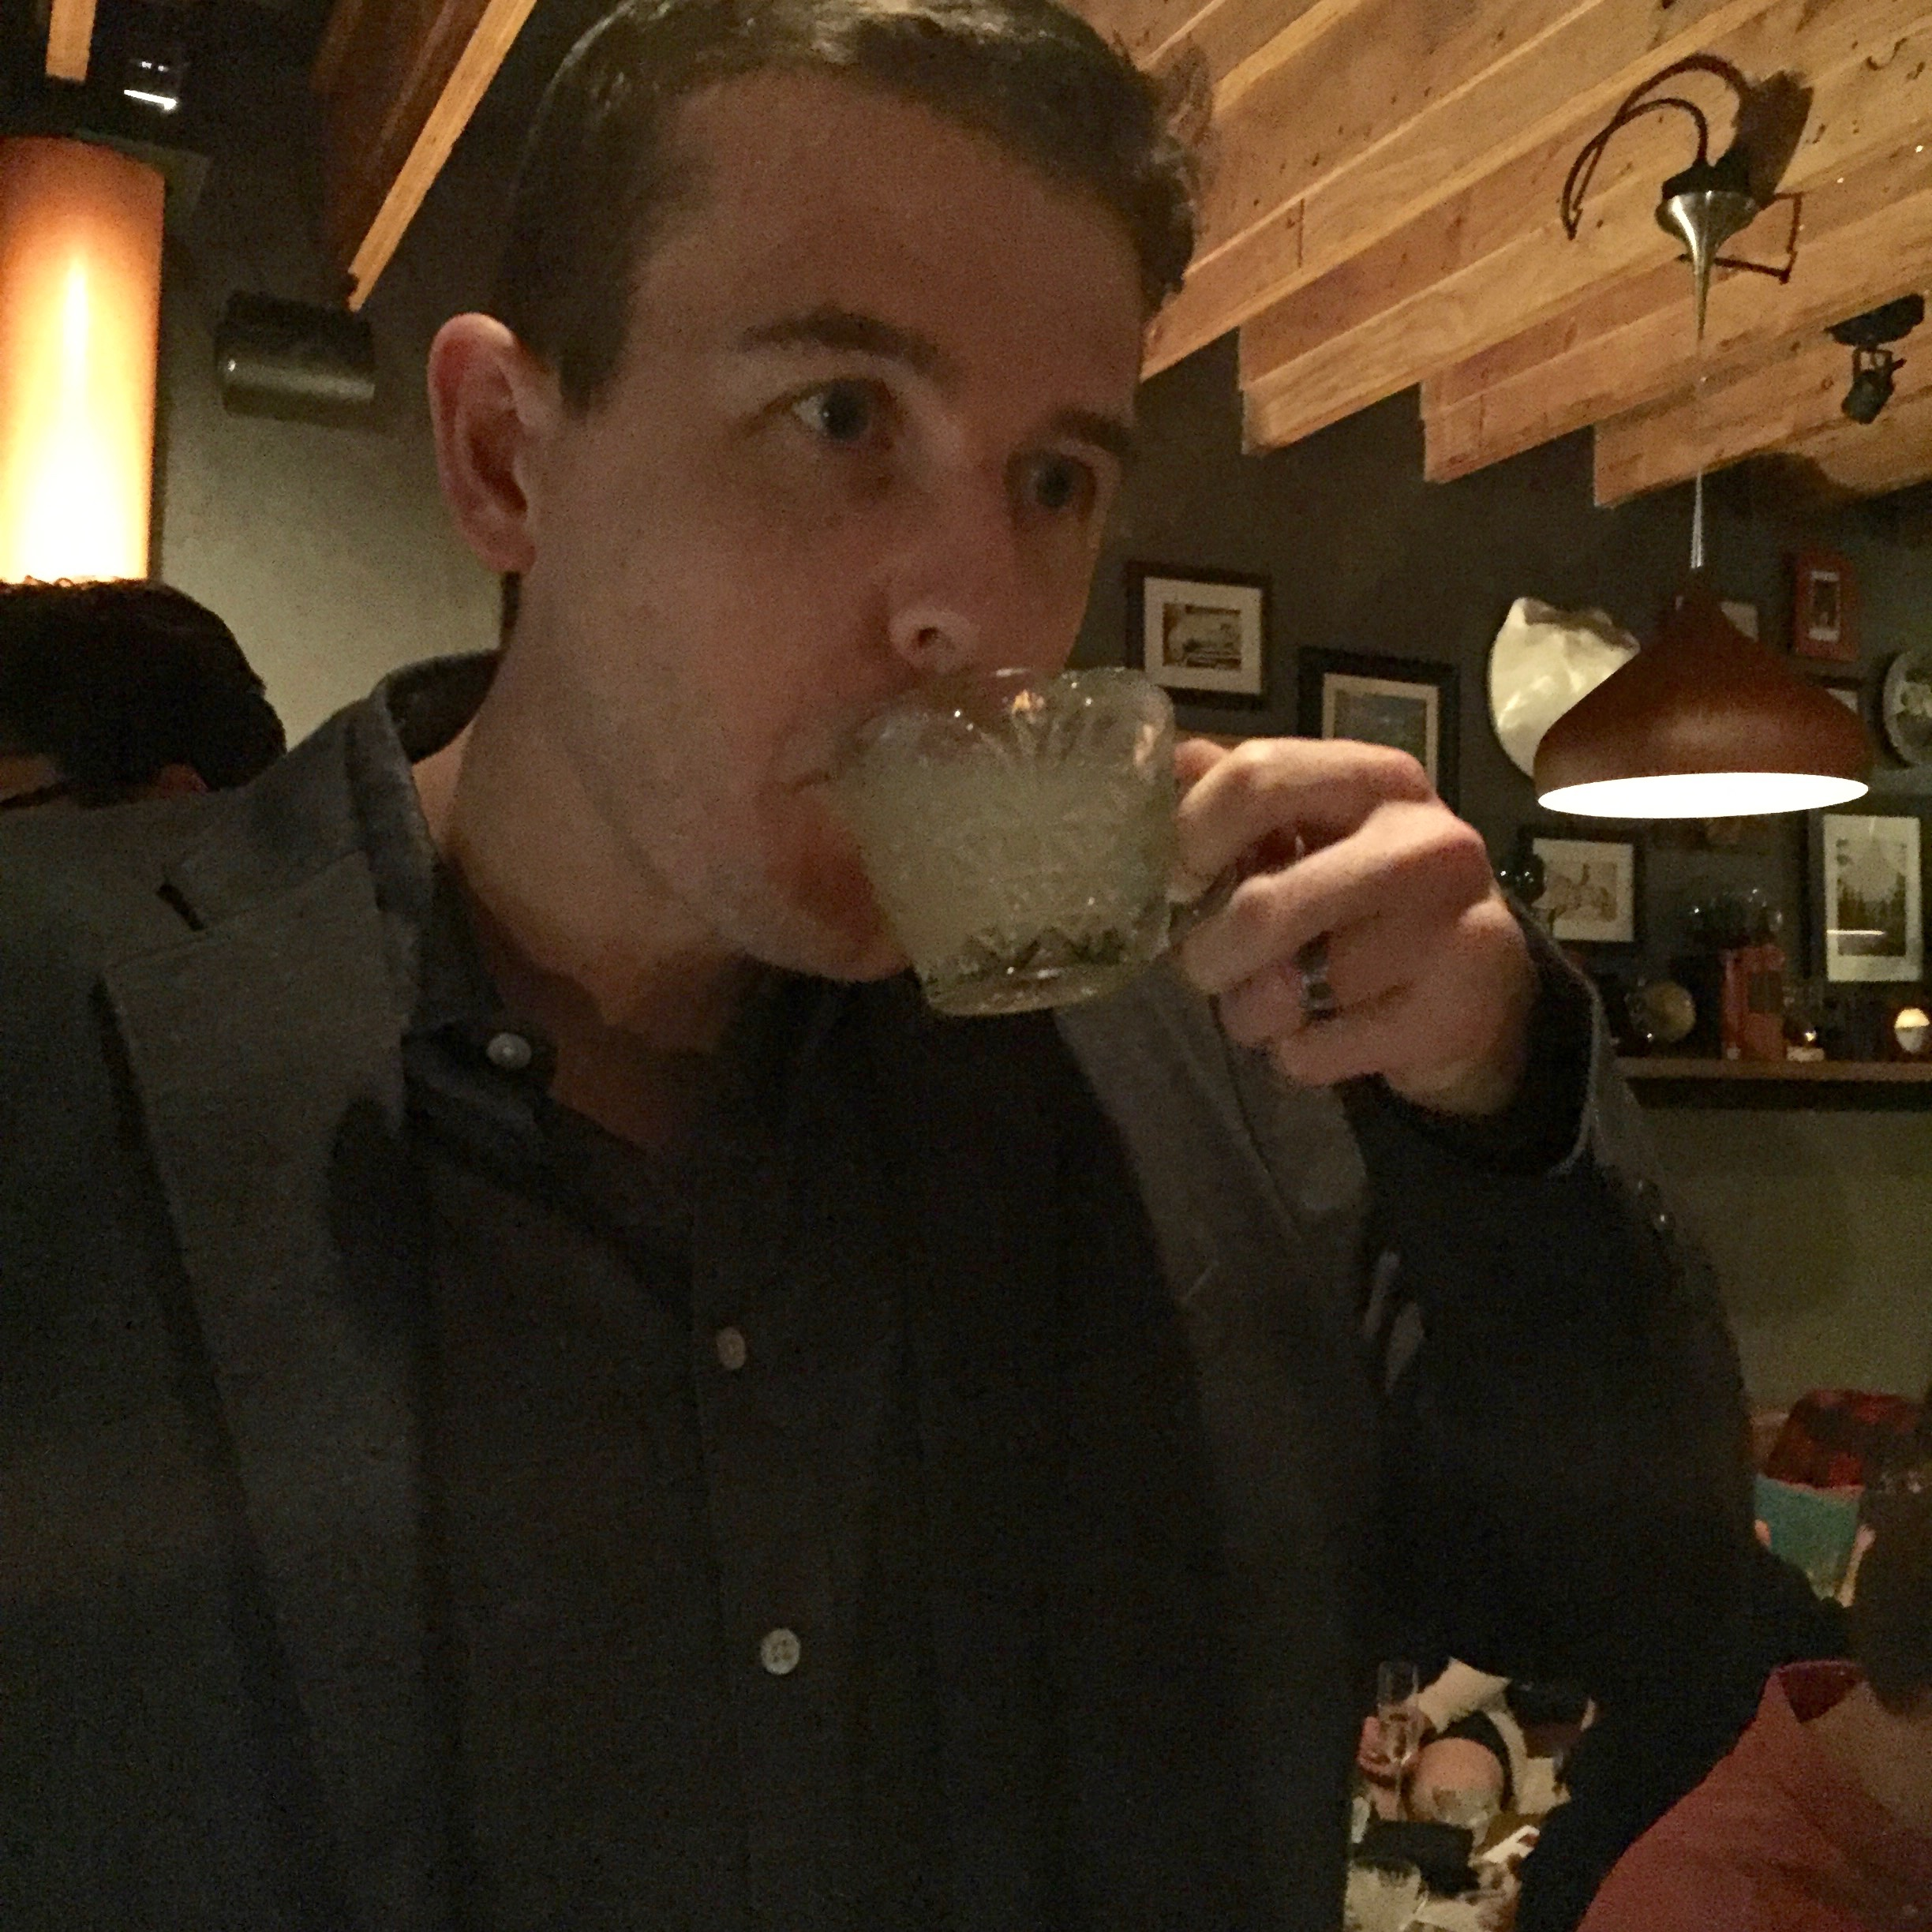 My husband enjoying his first round of punch in a little tea cup